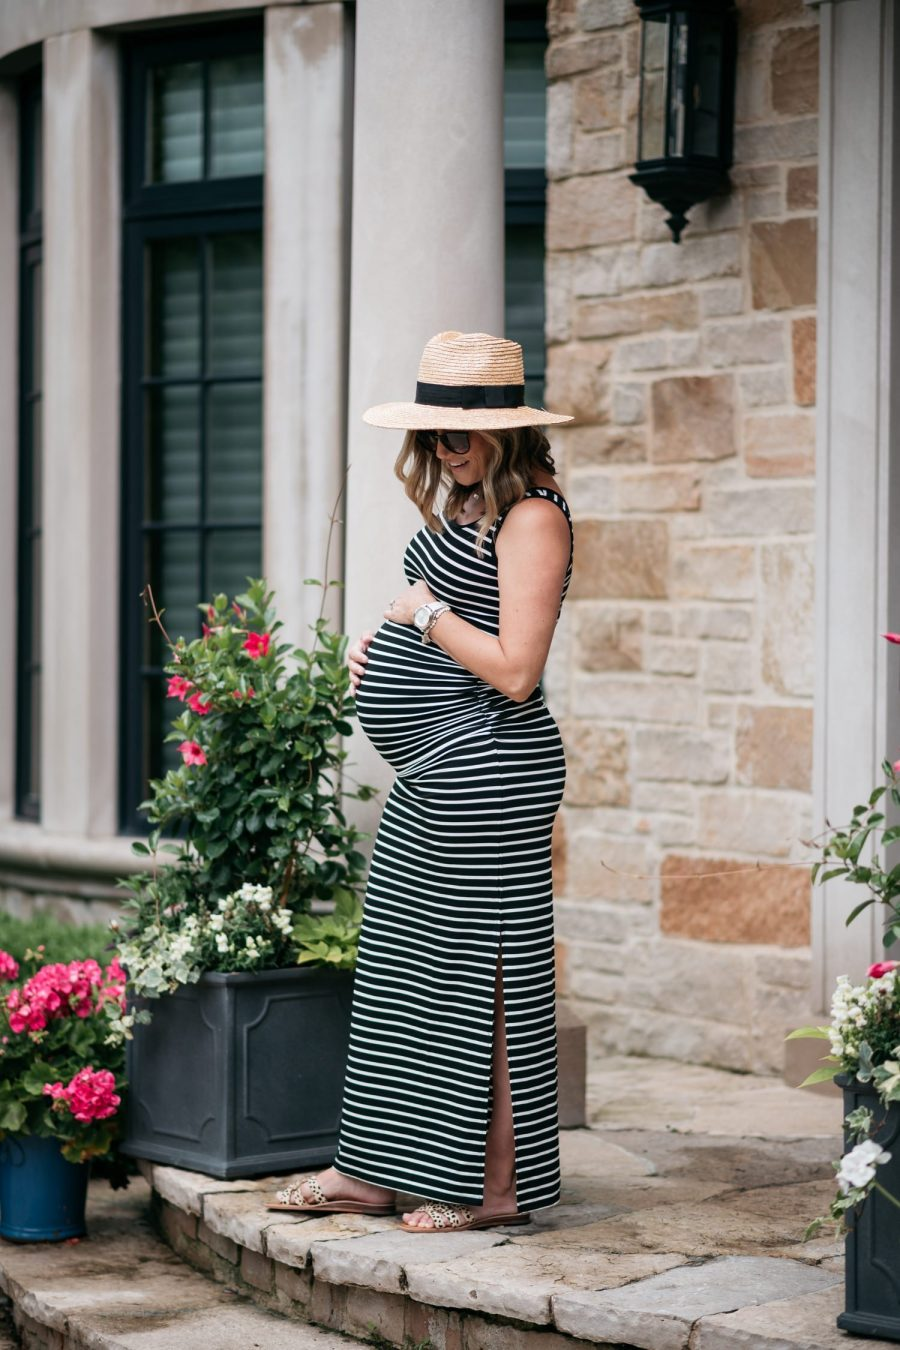 Maternity style: maxi dress and hat